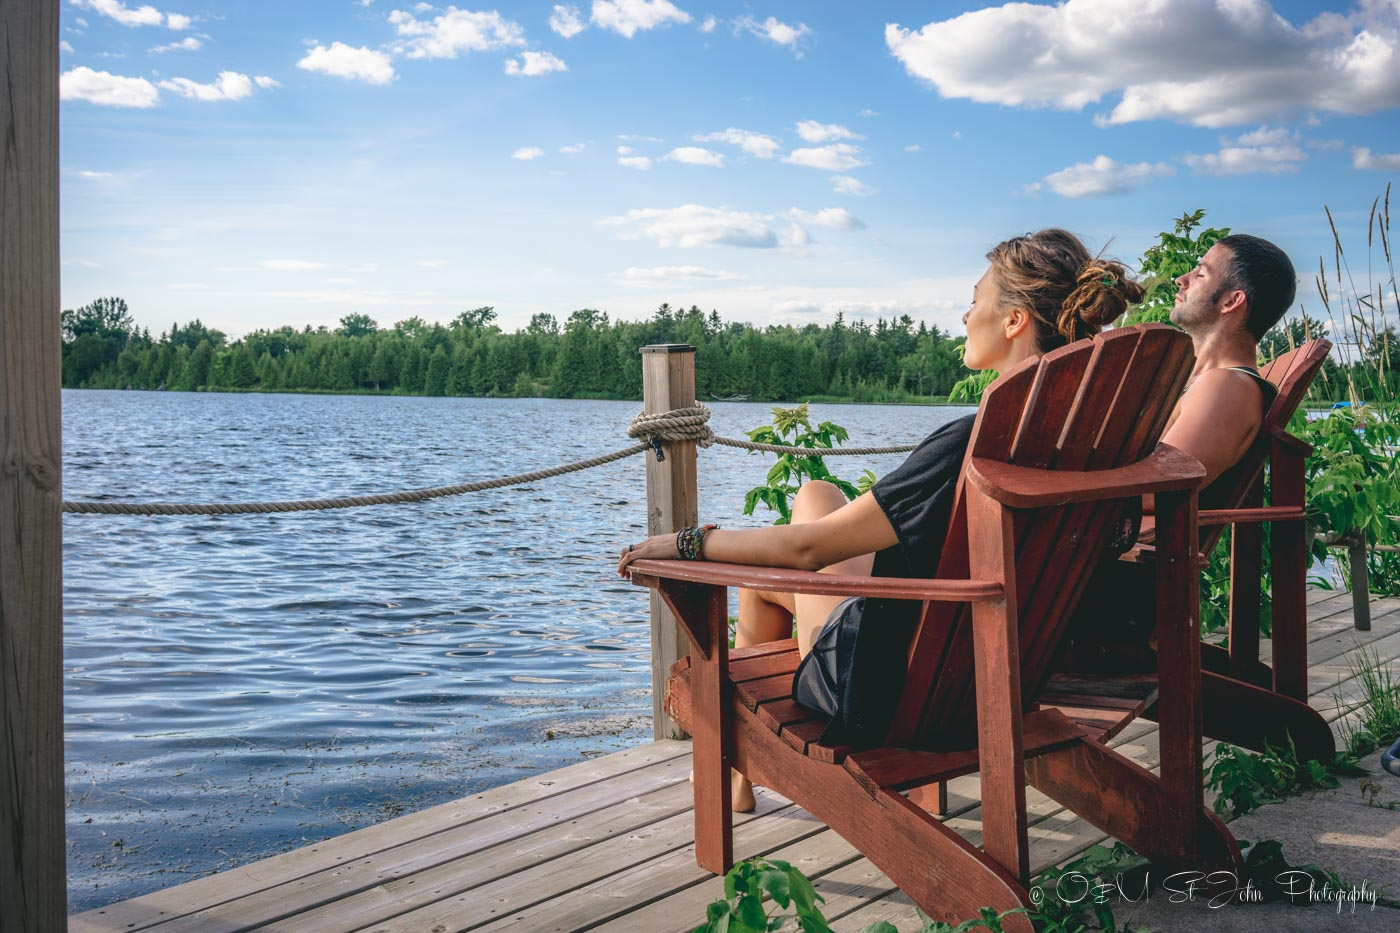 Enjoying the peace and quiet of lake country in Ontario, Canada